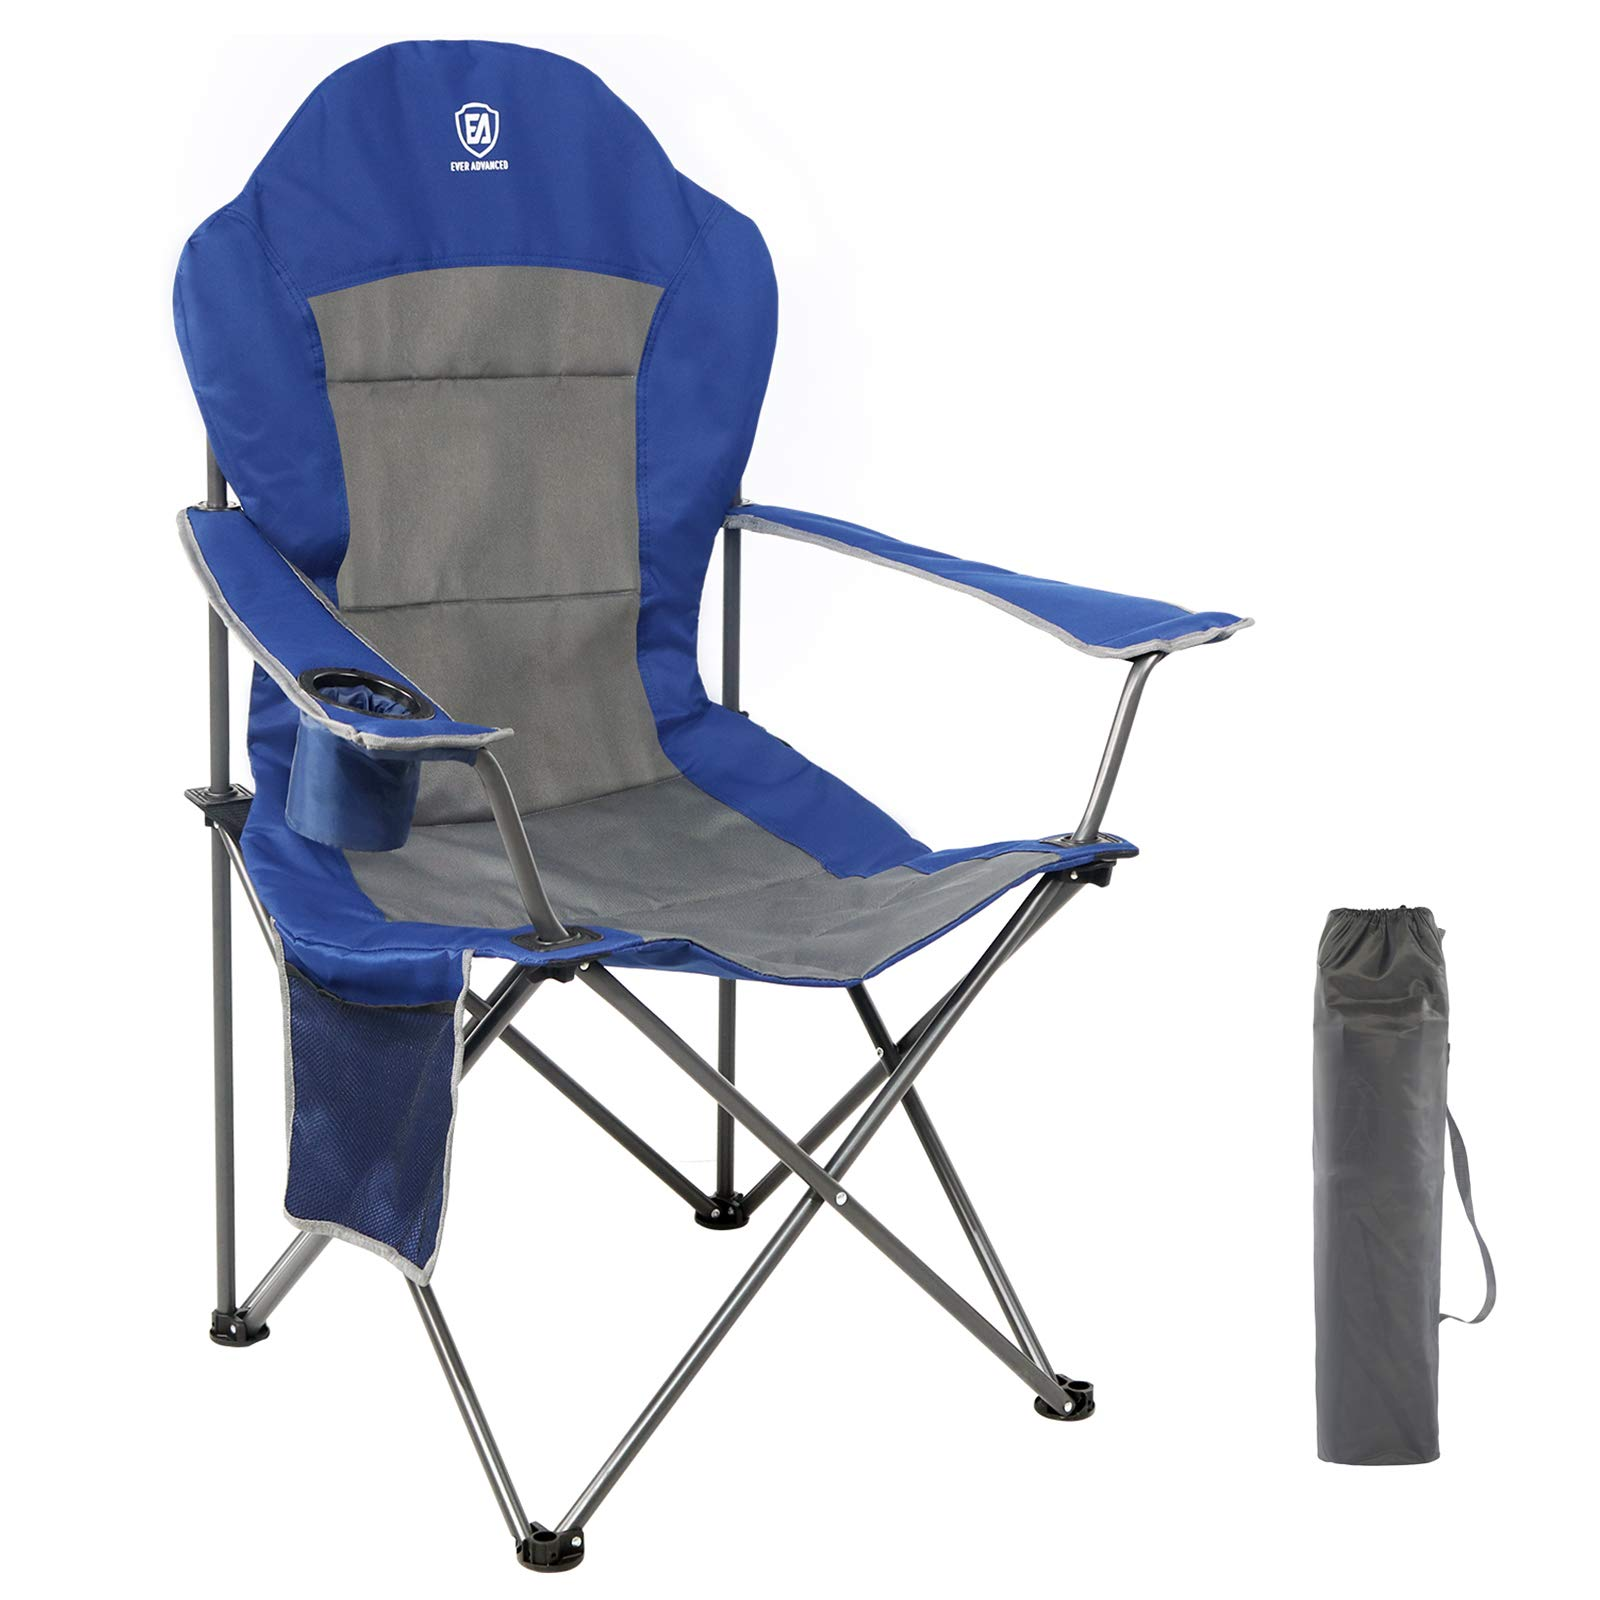 KingCamp Steel Tubes Padded Folding Camping Chair W// Cup Holder Support 350 LBS